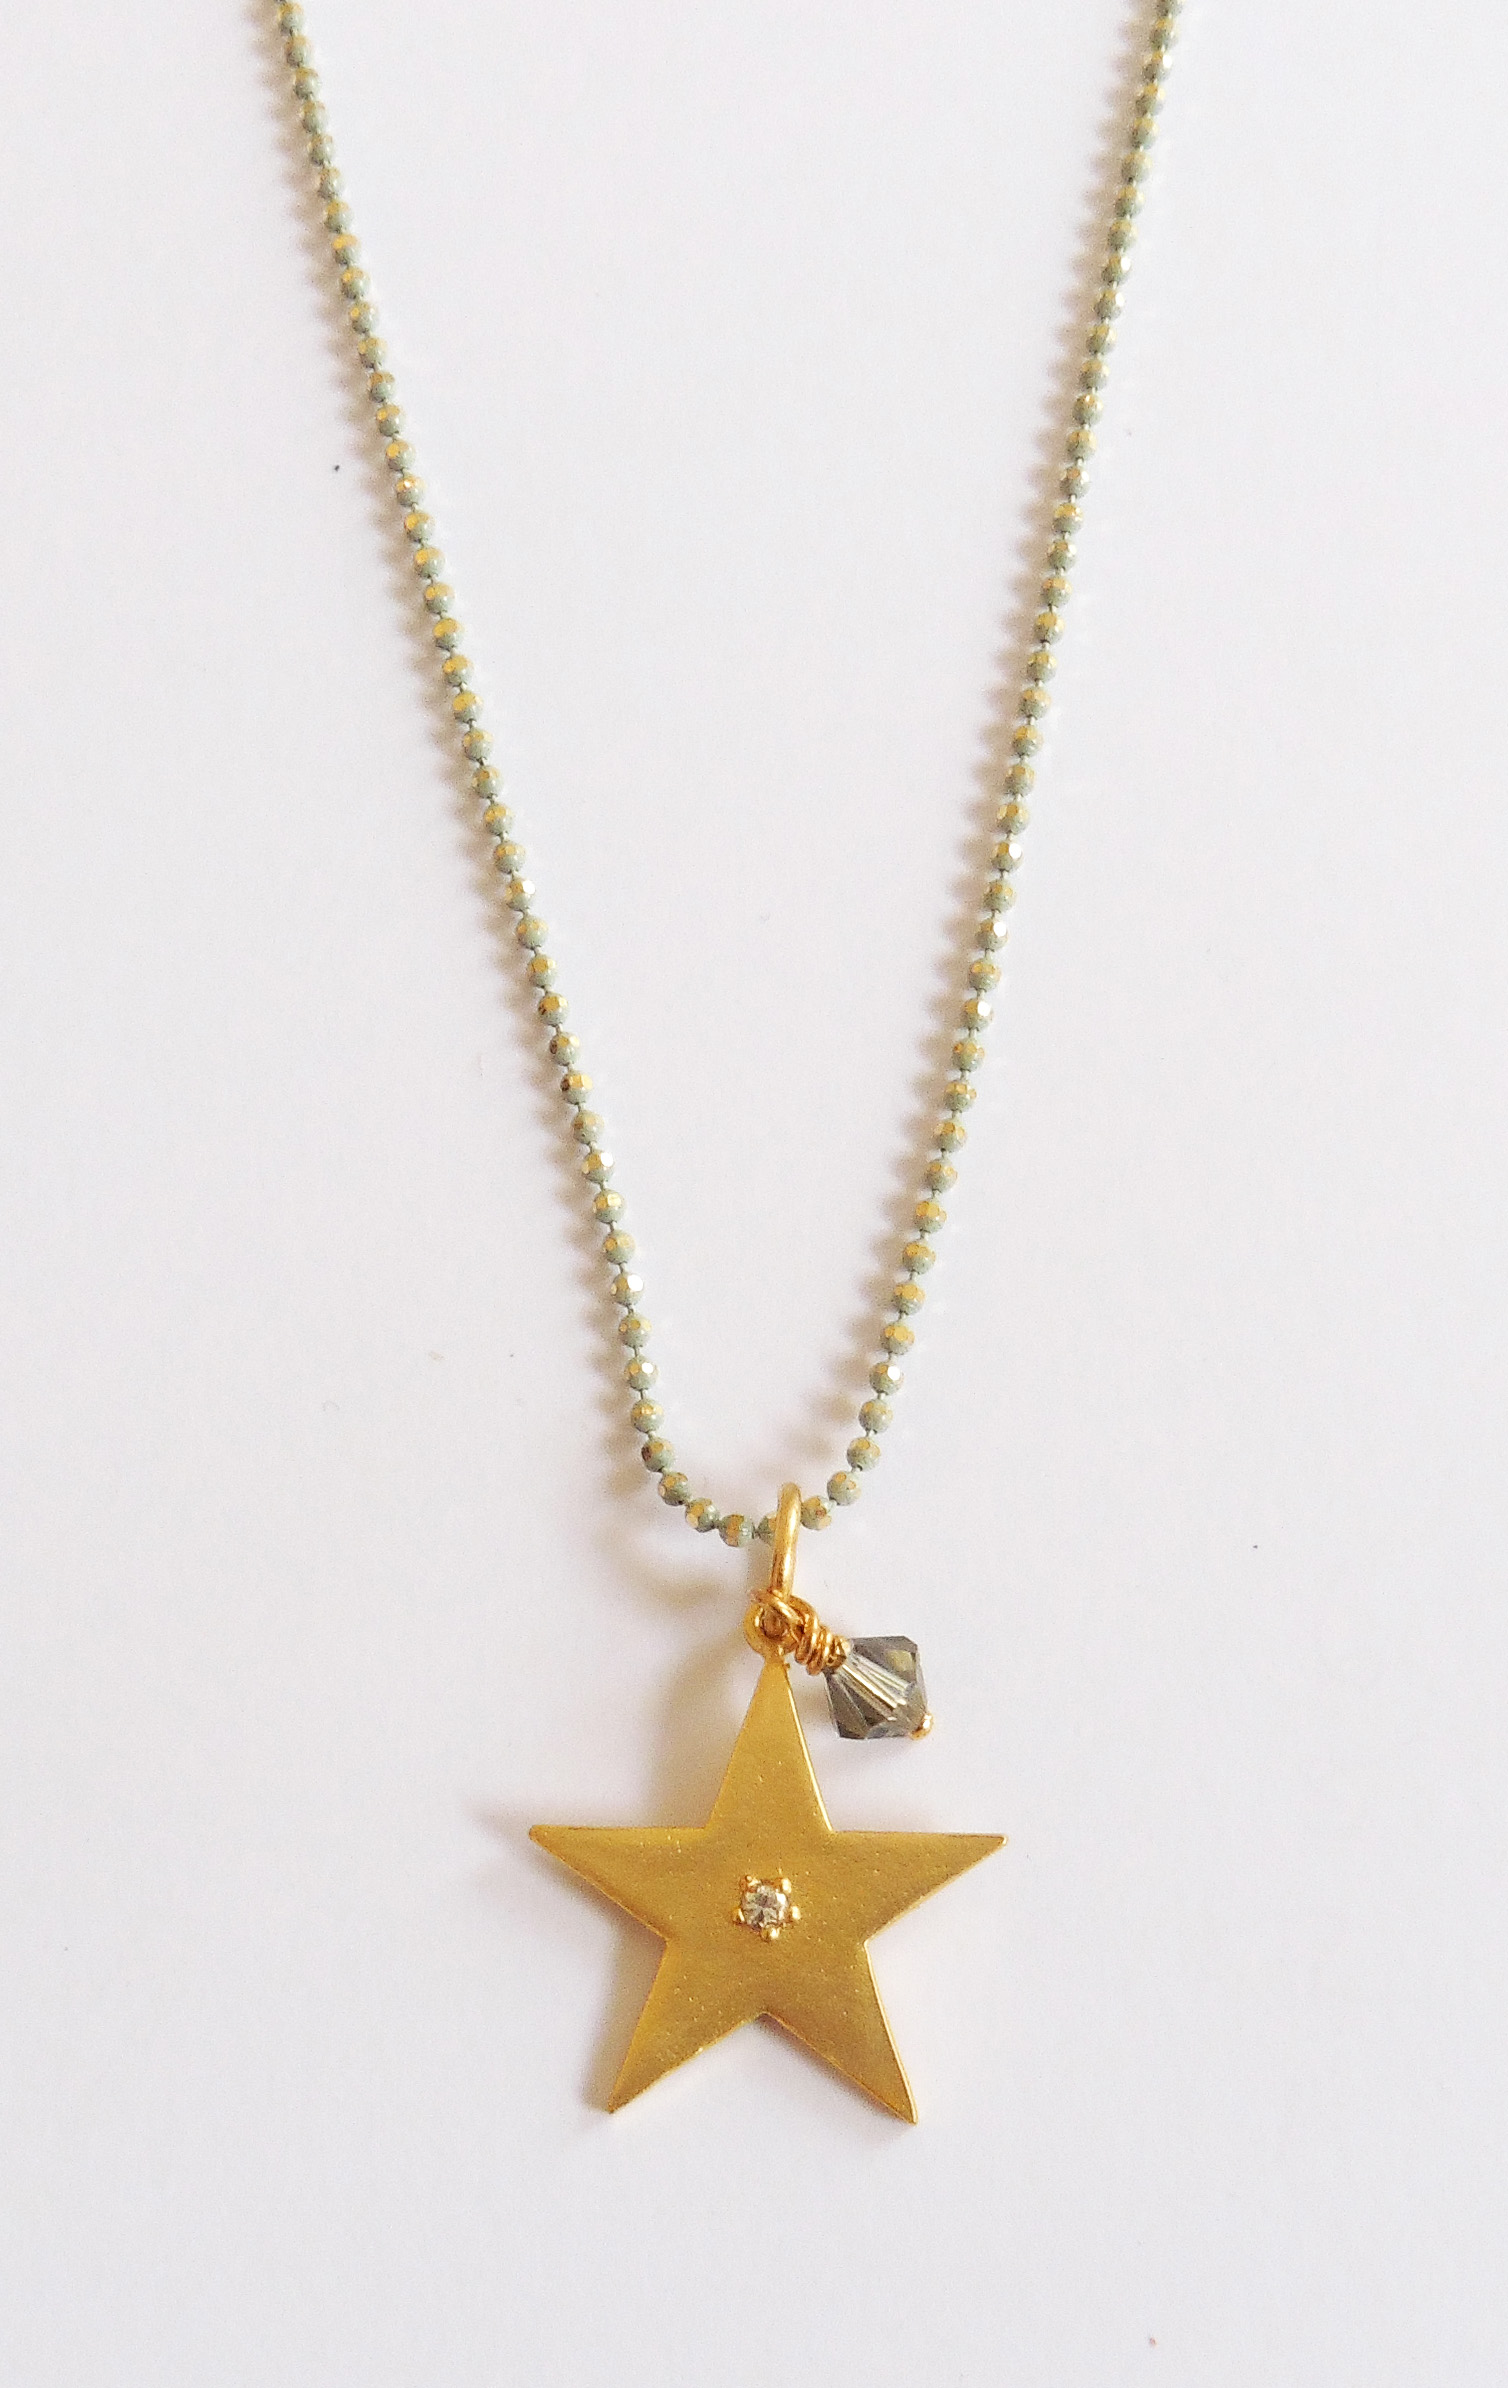 Gold-plated star pendant